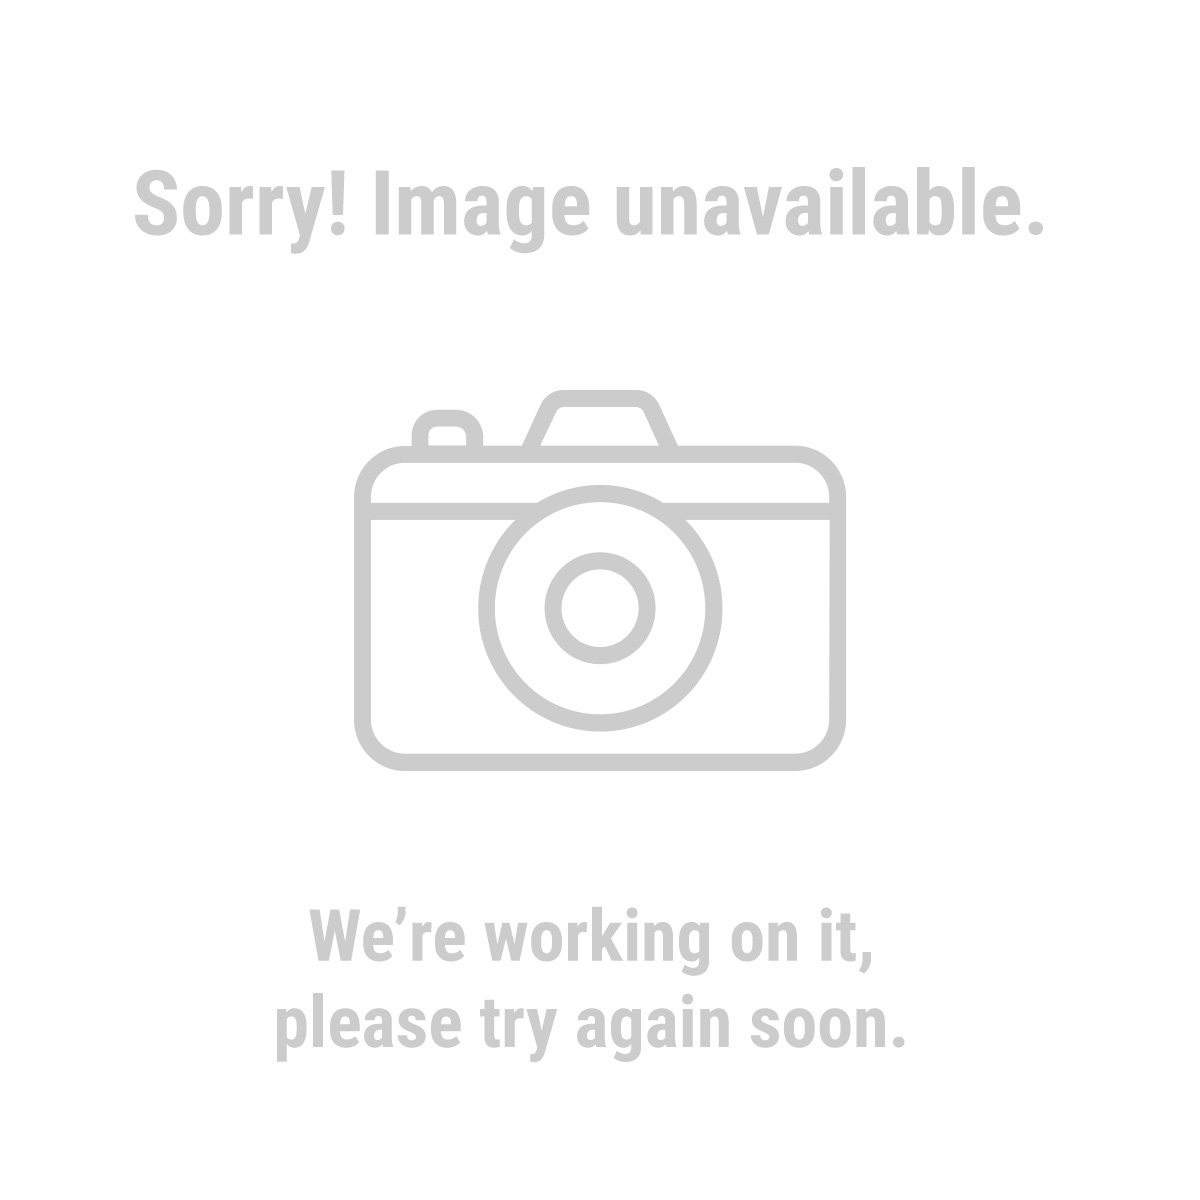 Warrior® 61150 3In 40 Grit Metal Cutoff Wheel 25Pc